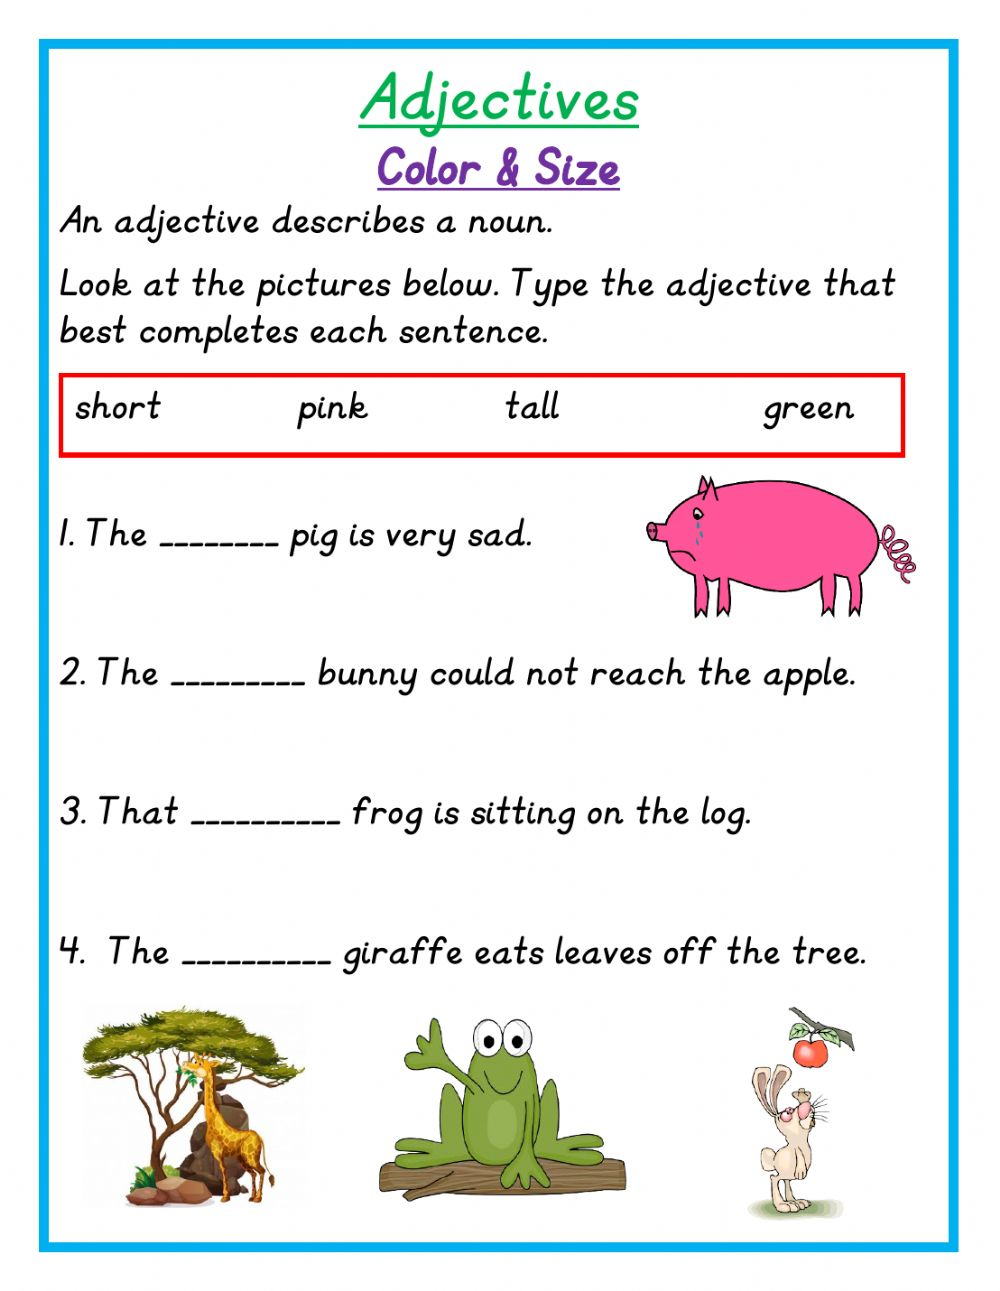 medium resolution of Adjectives online exercise for grade 1